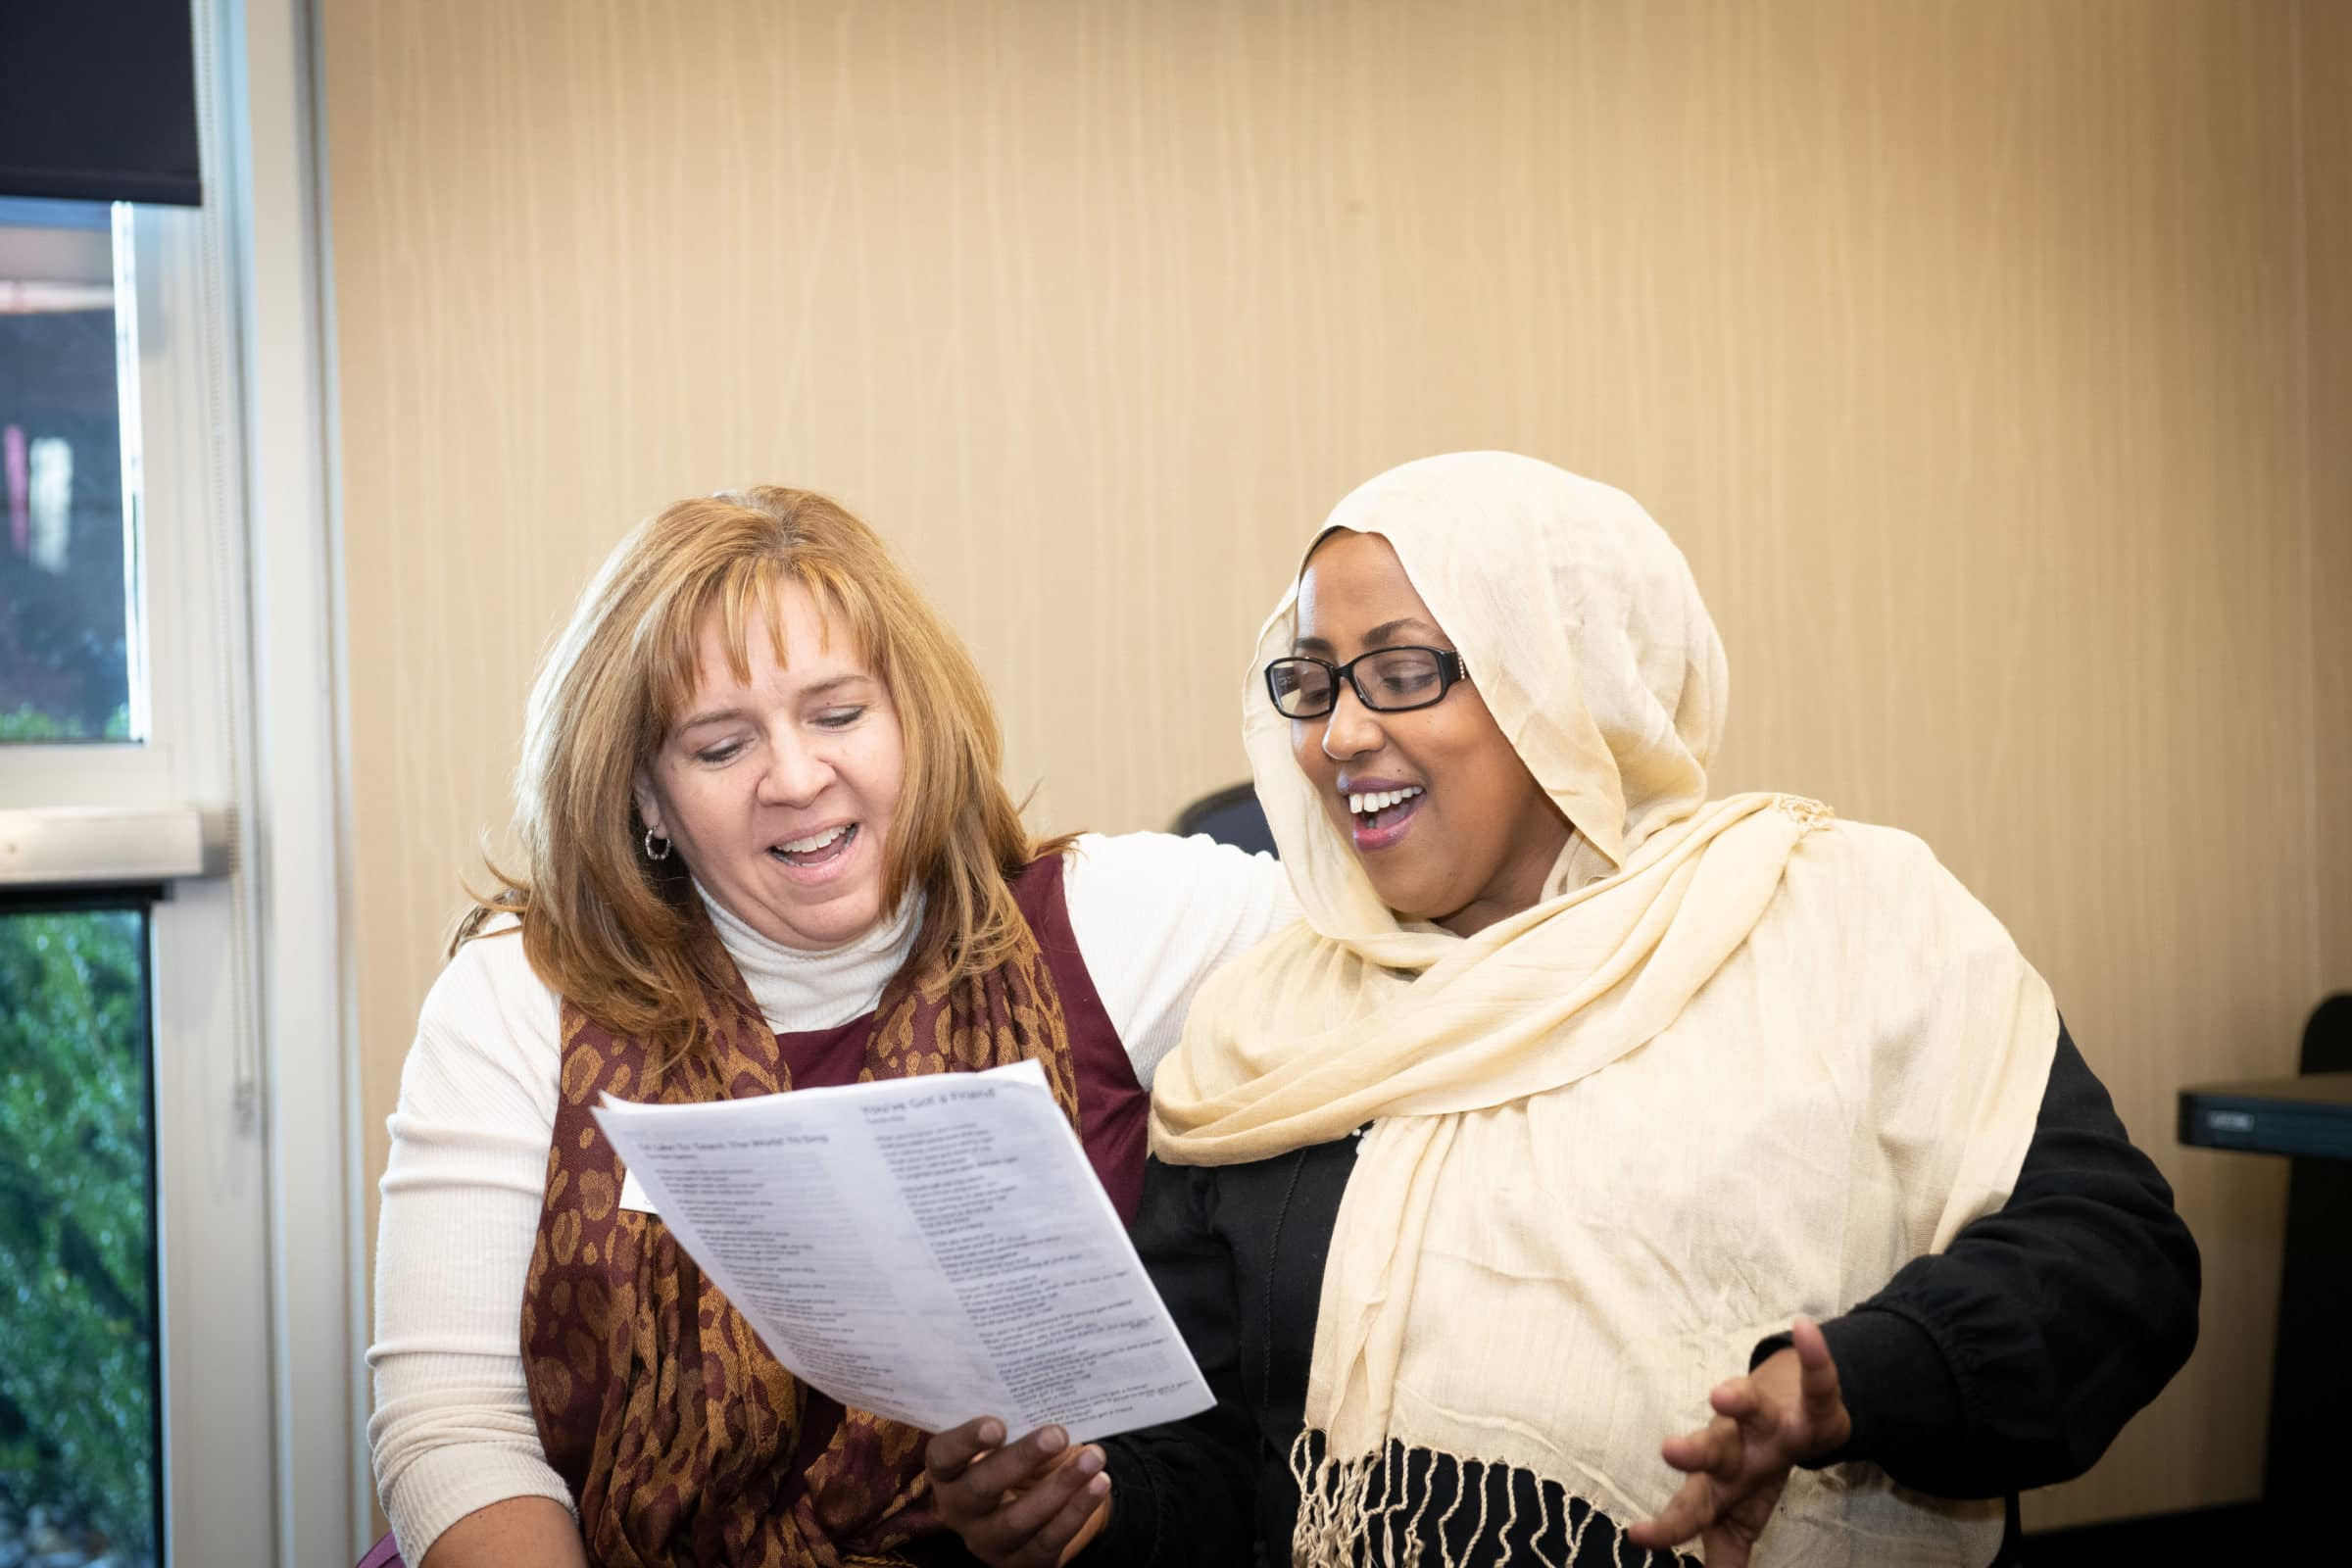 two women, one in hijab, sharing a song sheet